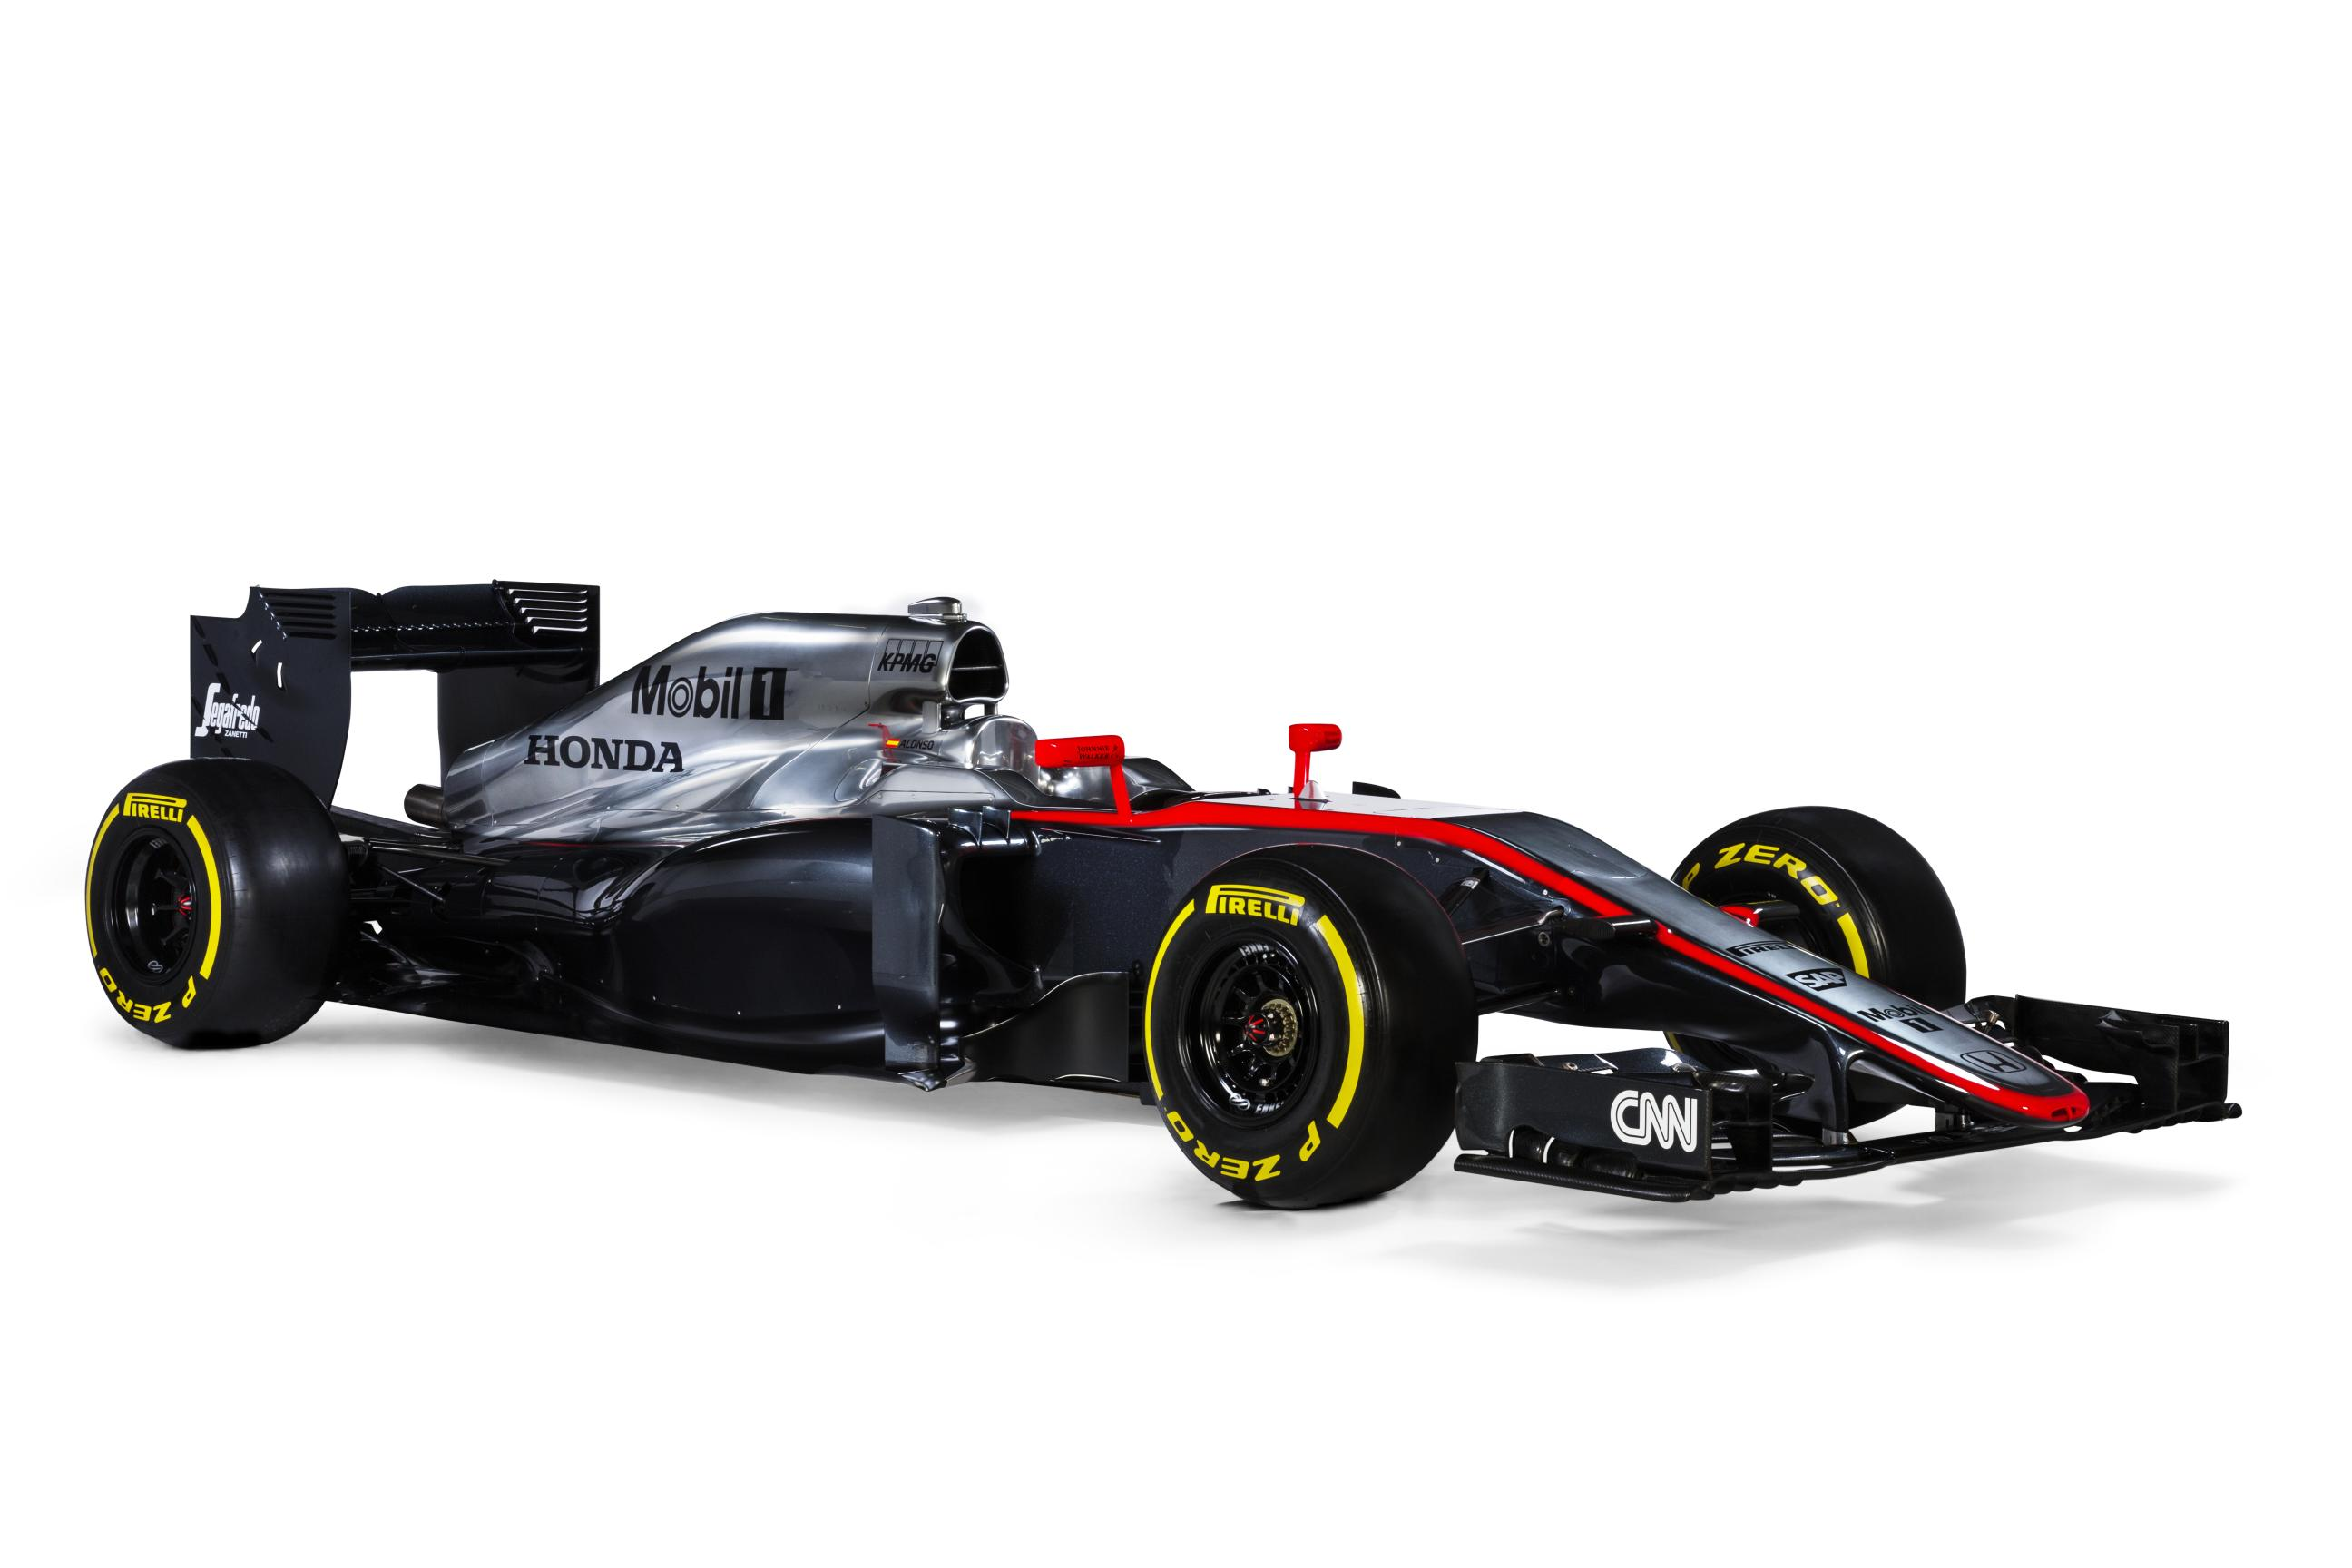 McLaren-Honda MP4-30 & Mercedes-AMG W06 Hybrid F1 Cars Unveiled - autoevolution